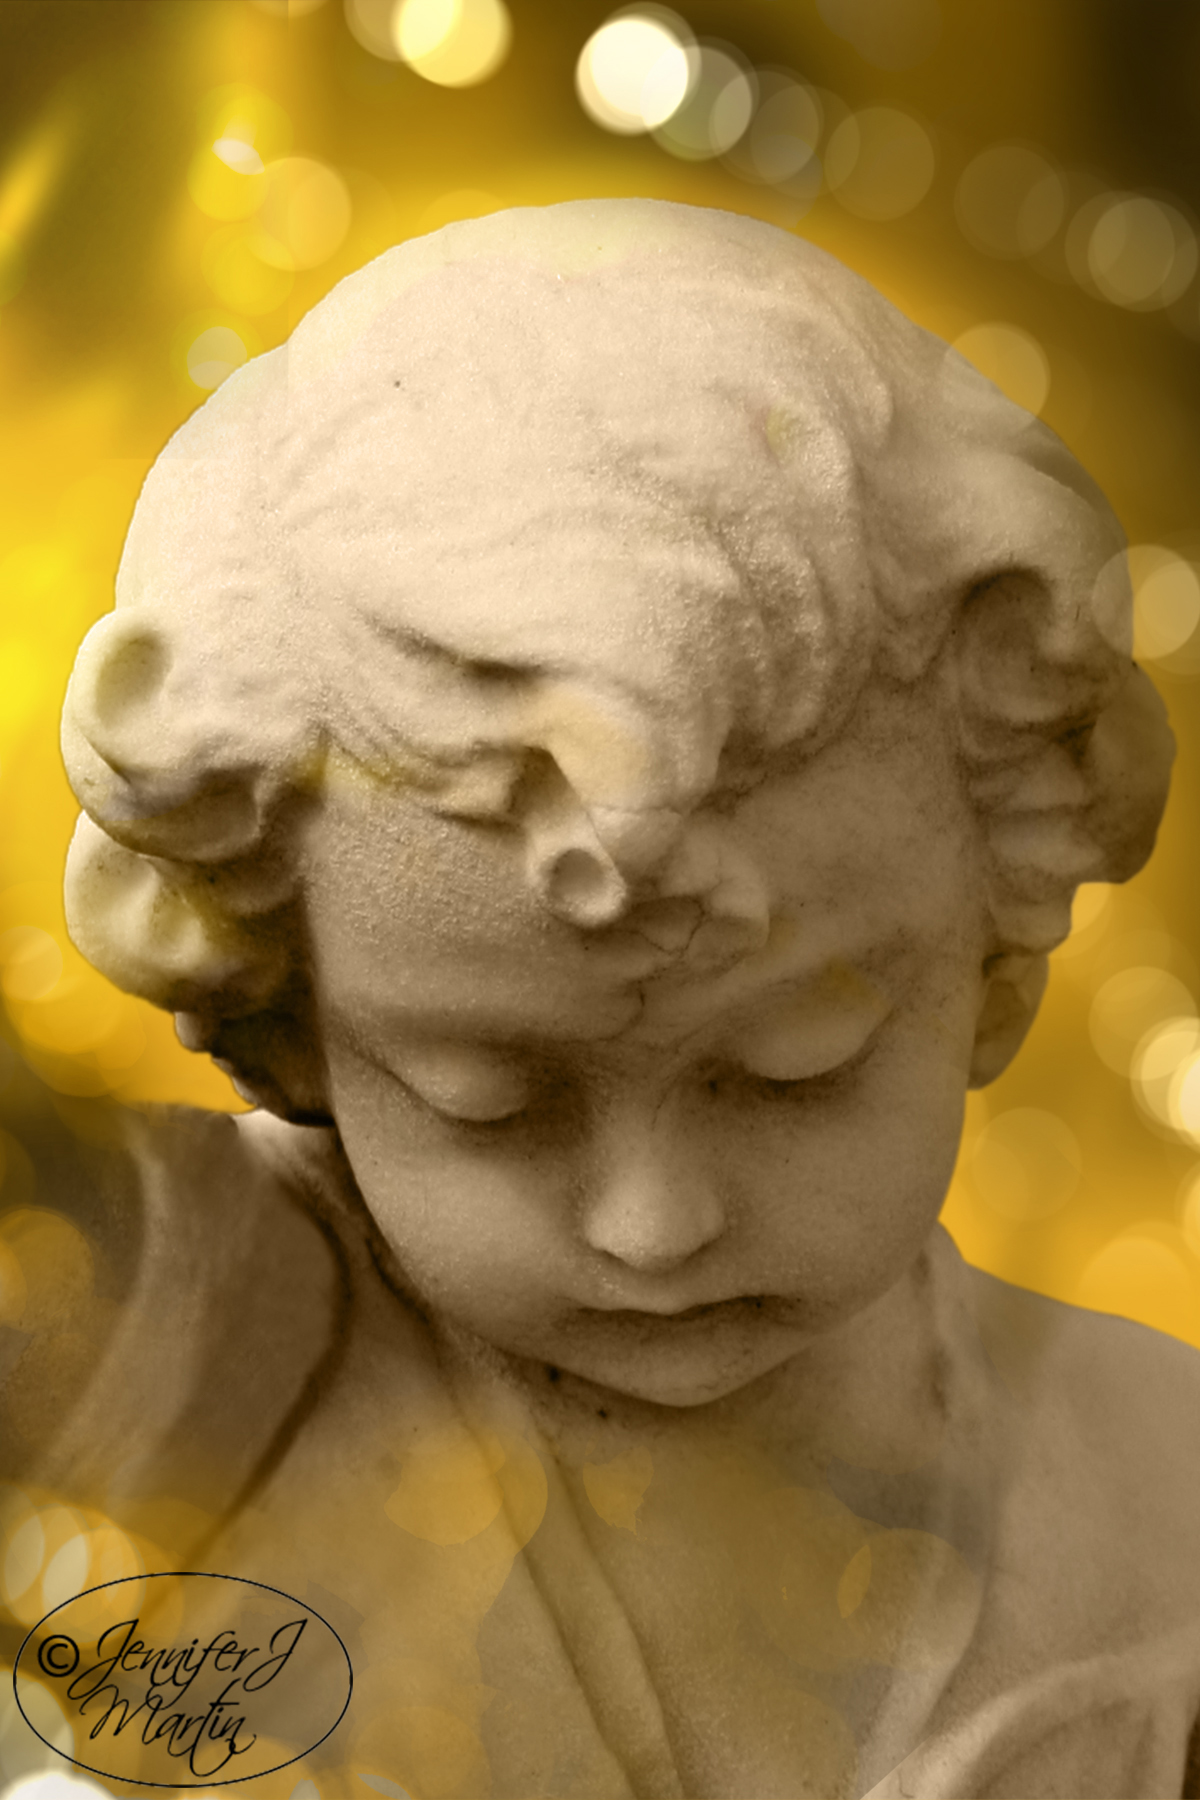 Cherub Gazing Down - Golden